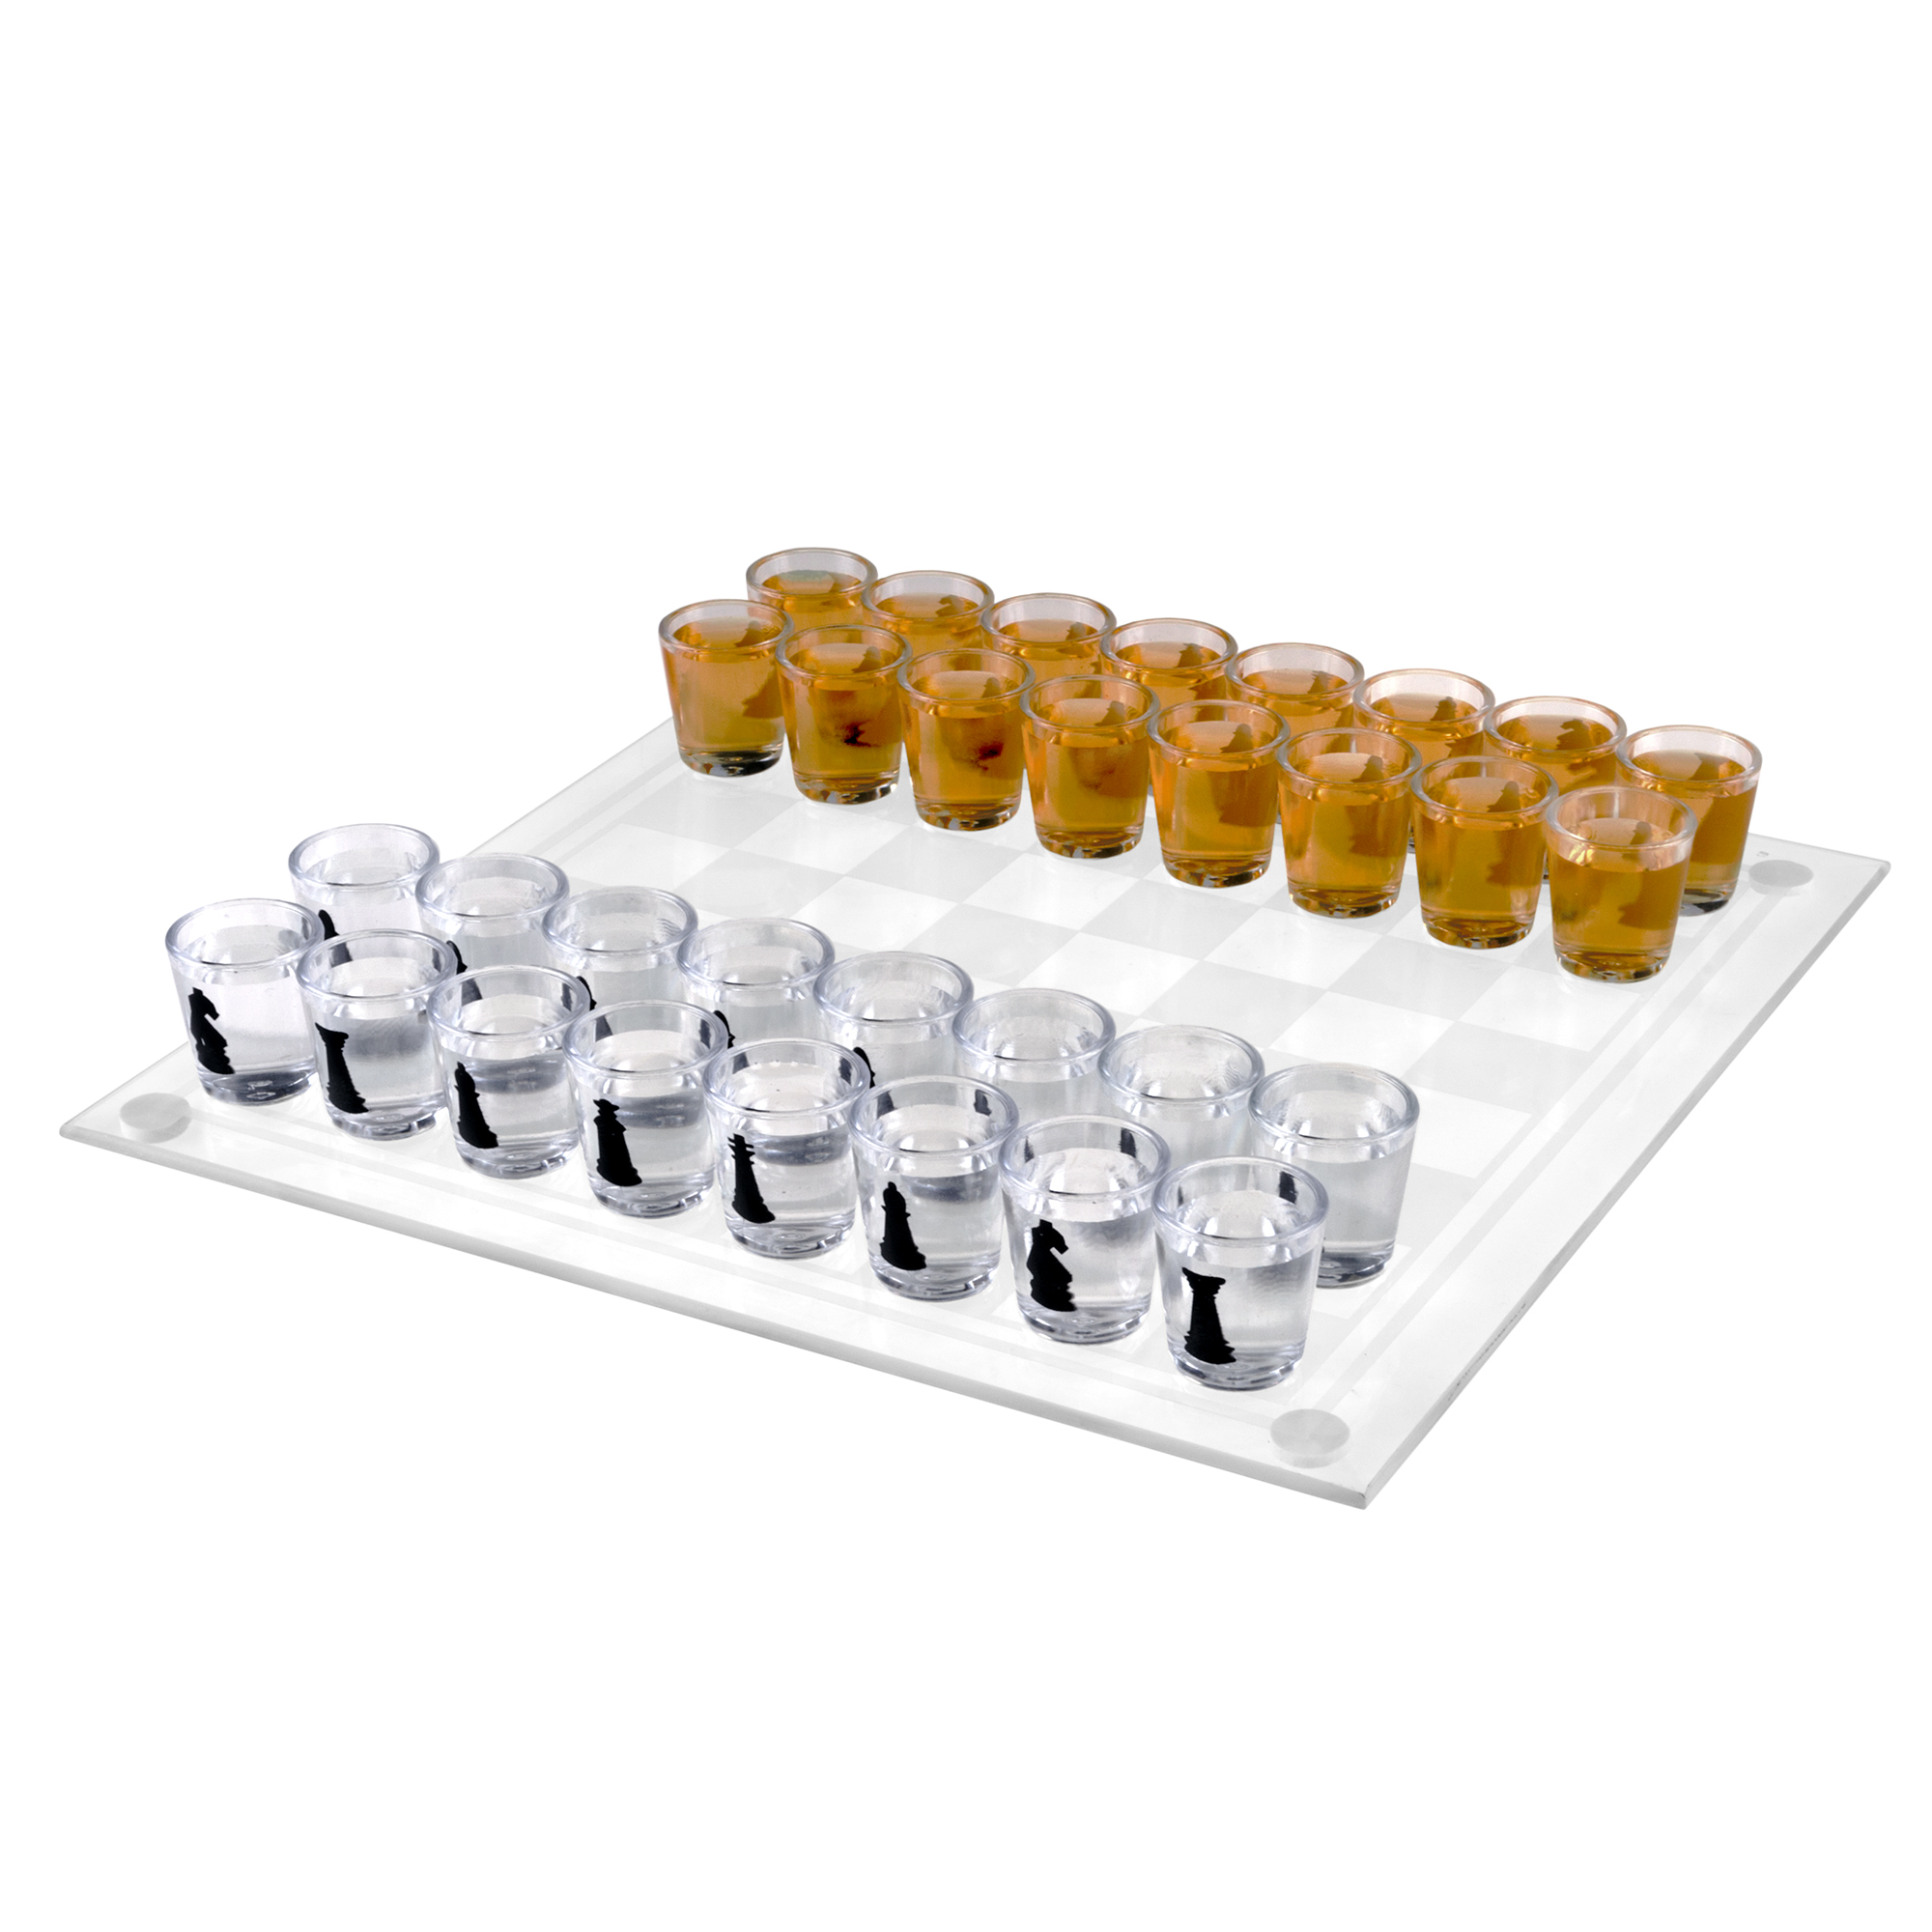 Shot Glass Chess and Checkers Game Set- 2 in 1 Drinking Game Set for Party or Game Night with Glass Game Board and 32 Shot Glasses by Hey! Play!